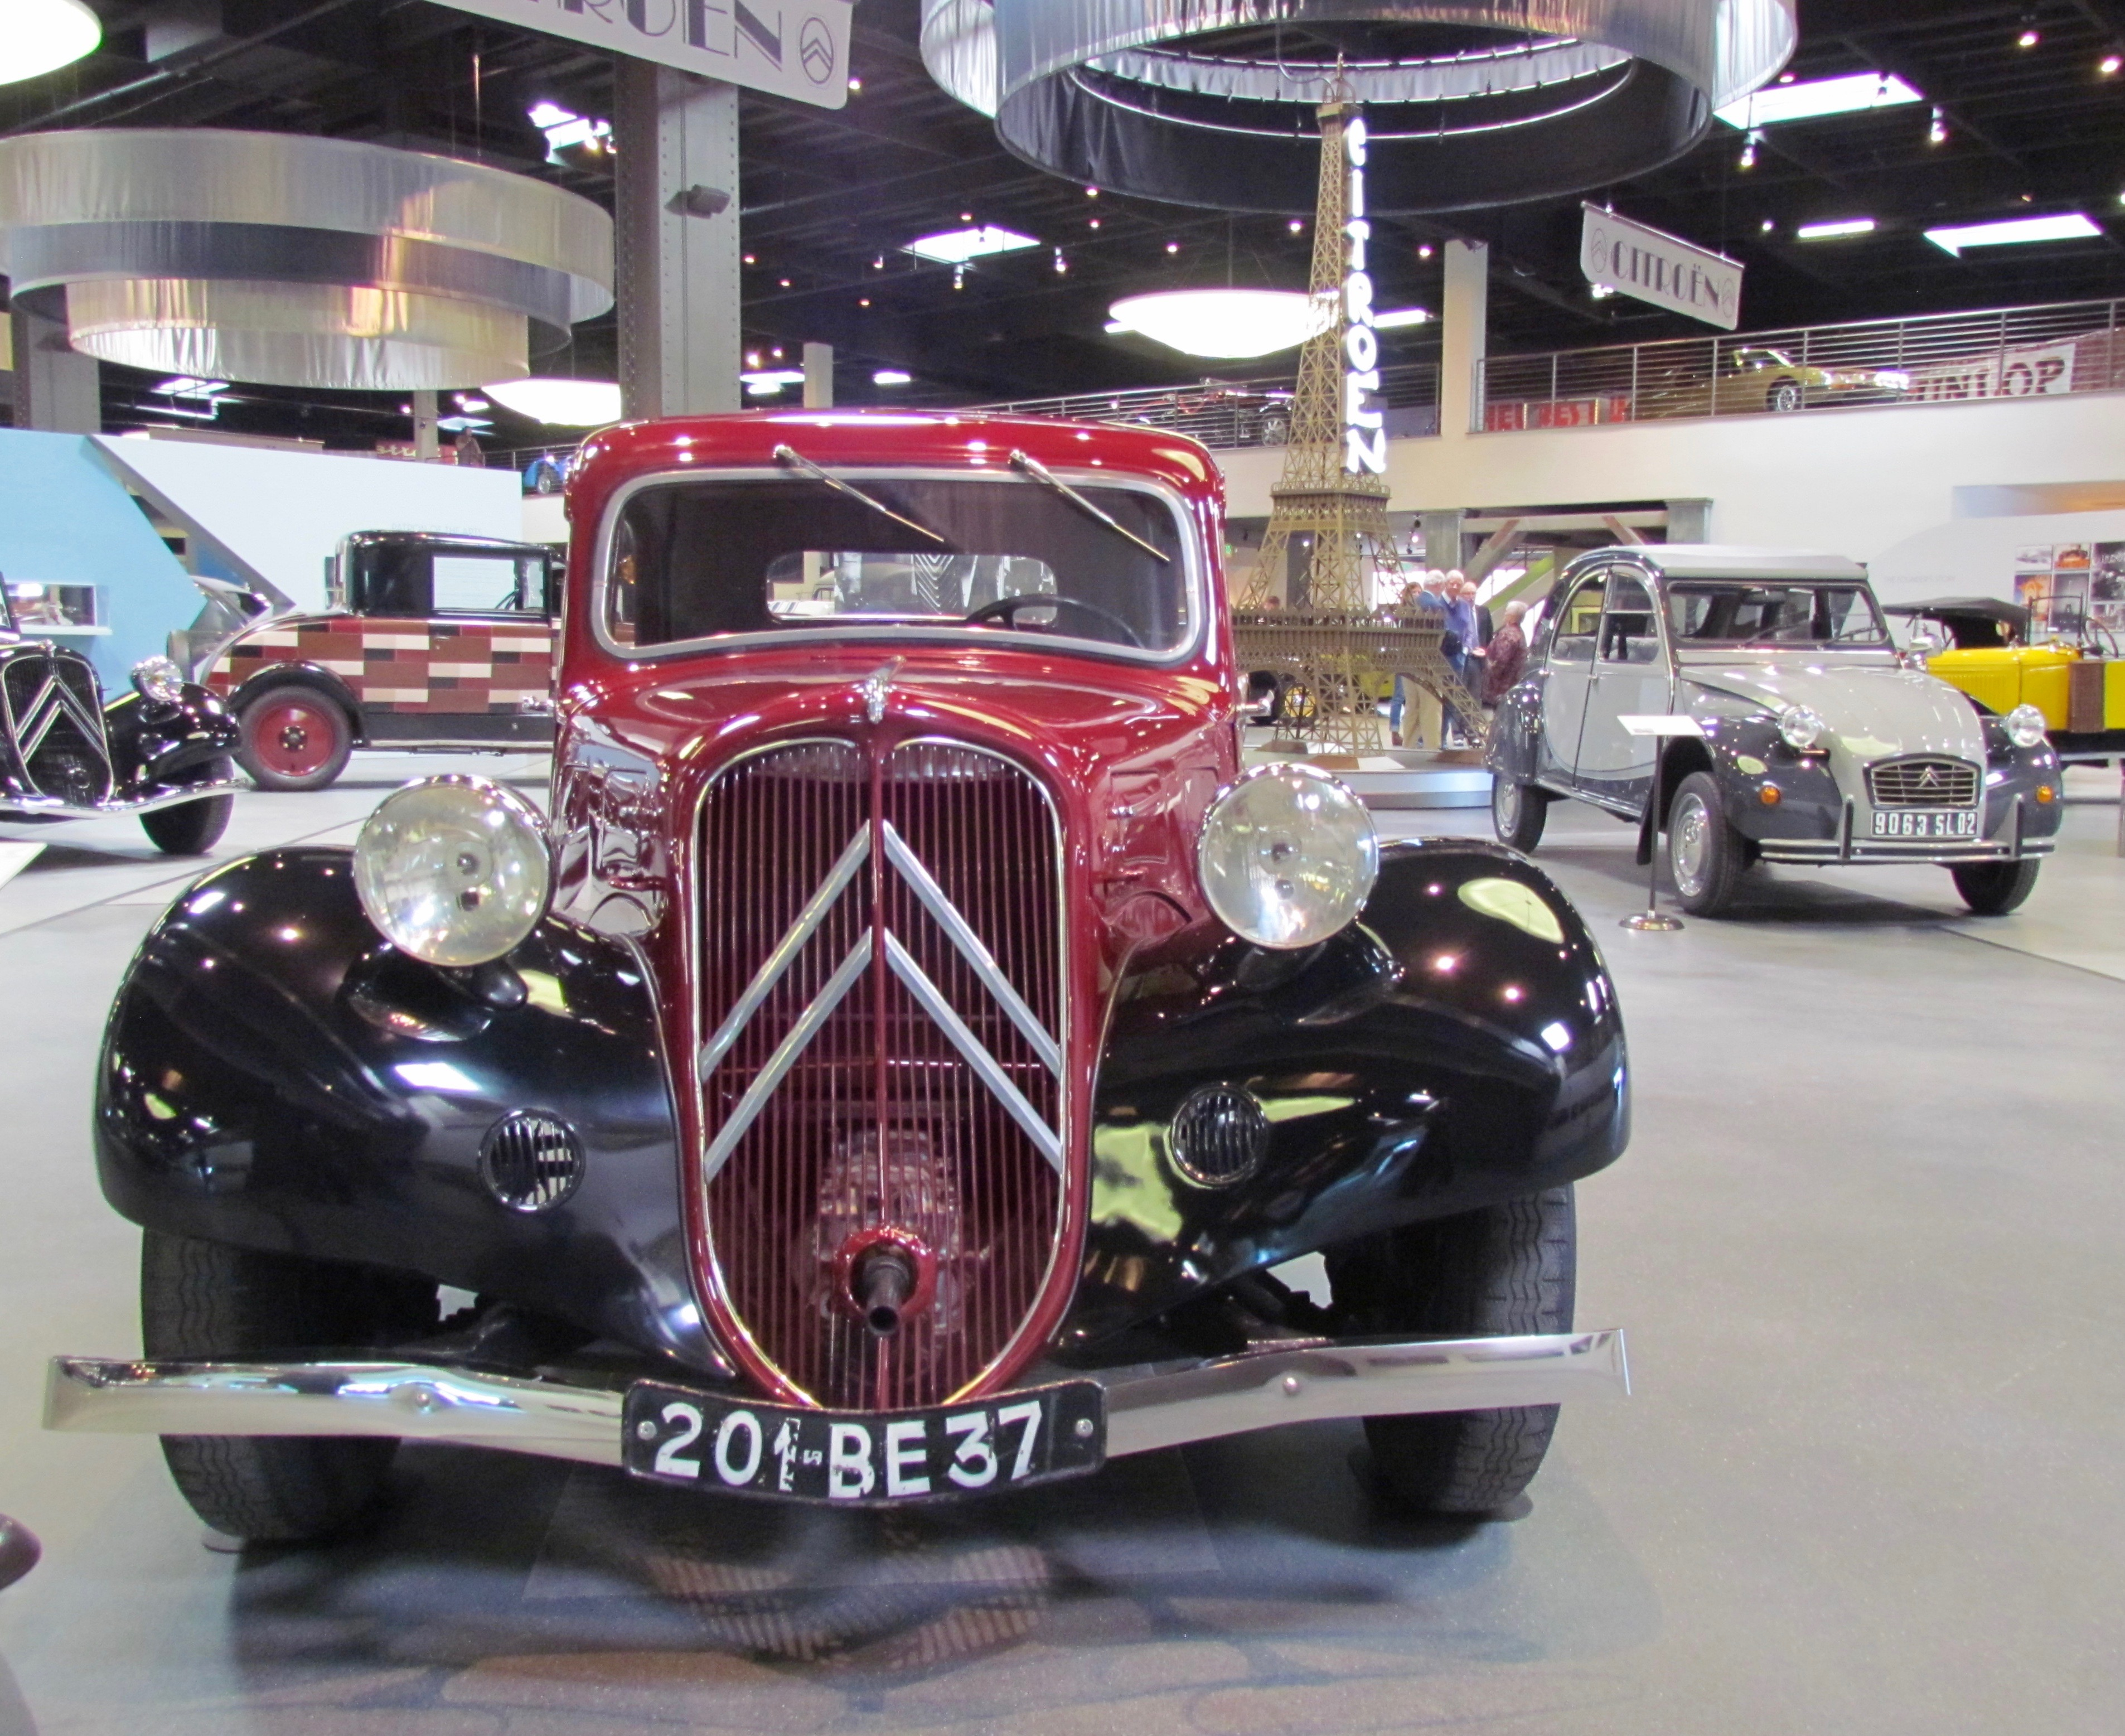 LA Classic Auto Show draws vehicles from SoCal museums | ClassicCars